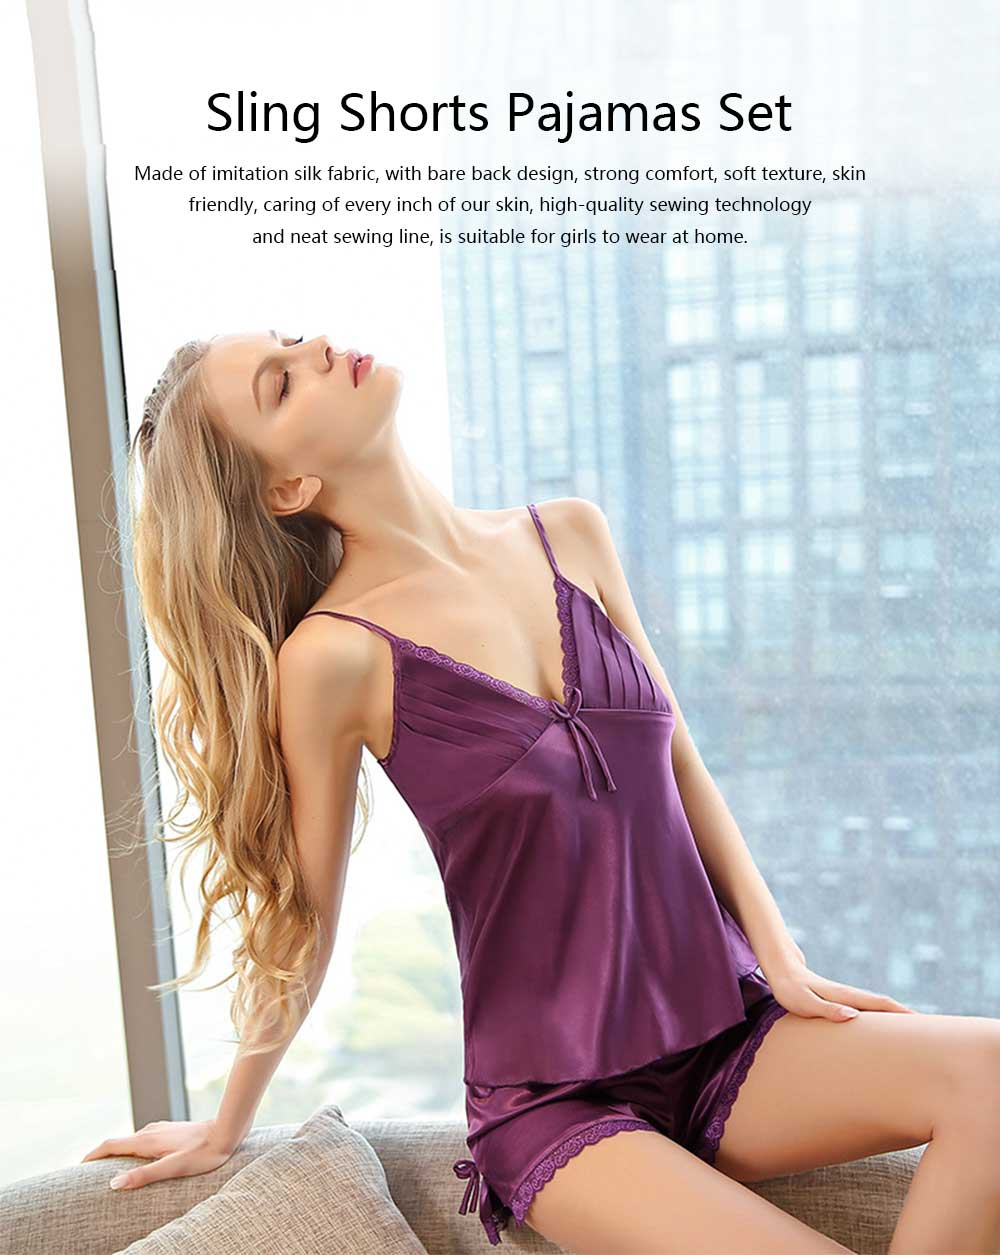 New Ladies Sexy Bare Back Imitation Silk Fabric Nightdress, V-neck Sling Shorts Pajamas Set 0